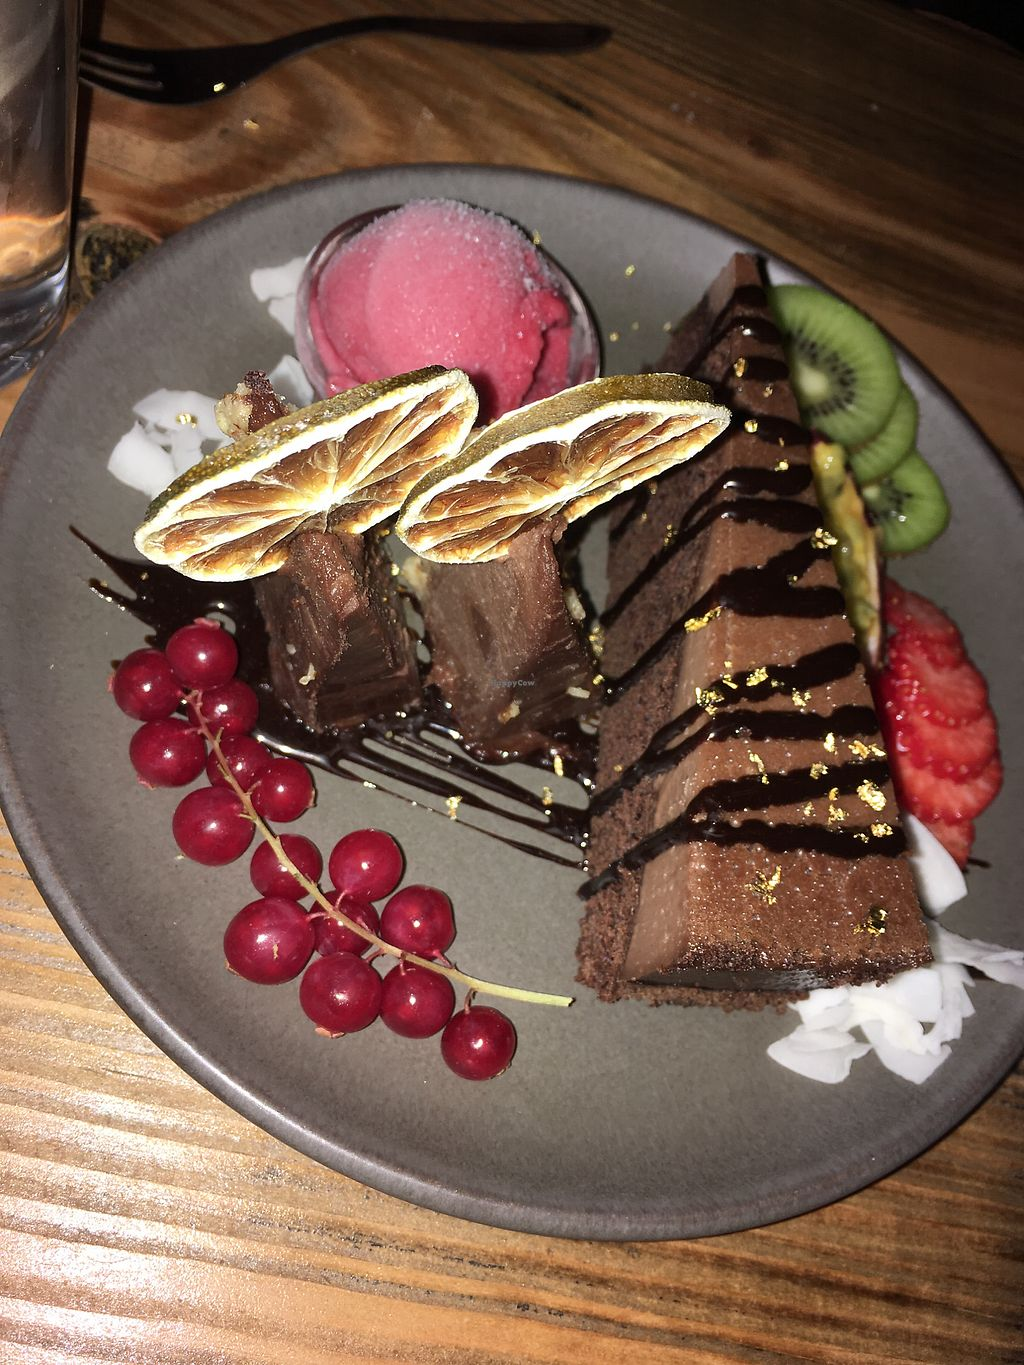 """Photo of Souls  by <a href=""""/members/profile/Anais1992"""">Anais1992</a> <br/>Death by chocolate dessert <br/> February 17, 2018  - <a href='/contact/abuse/image/71701/360524'>Report</a>"""